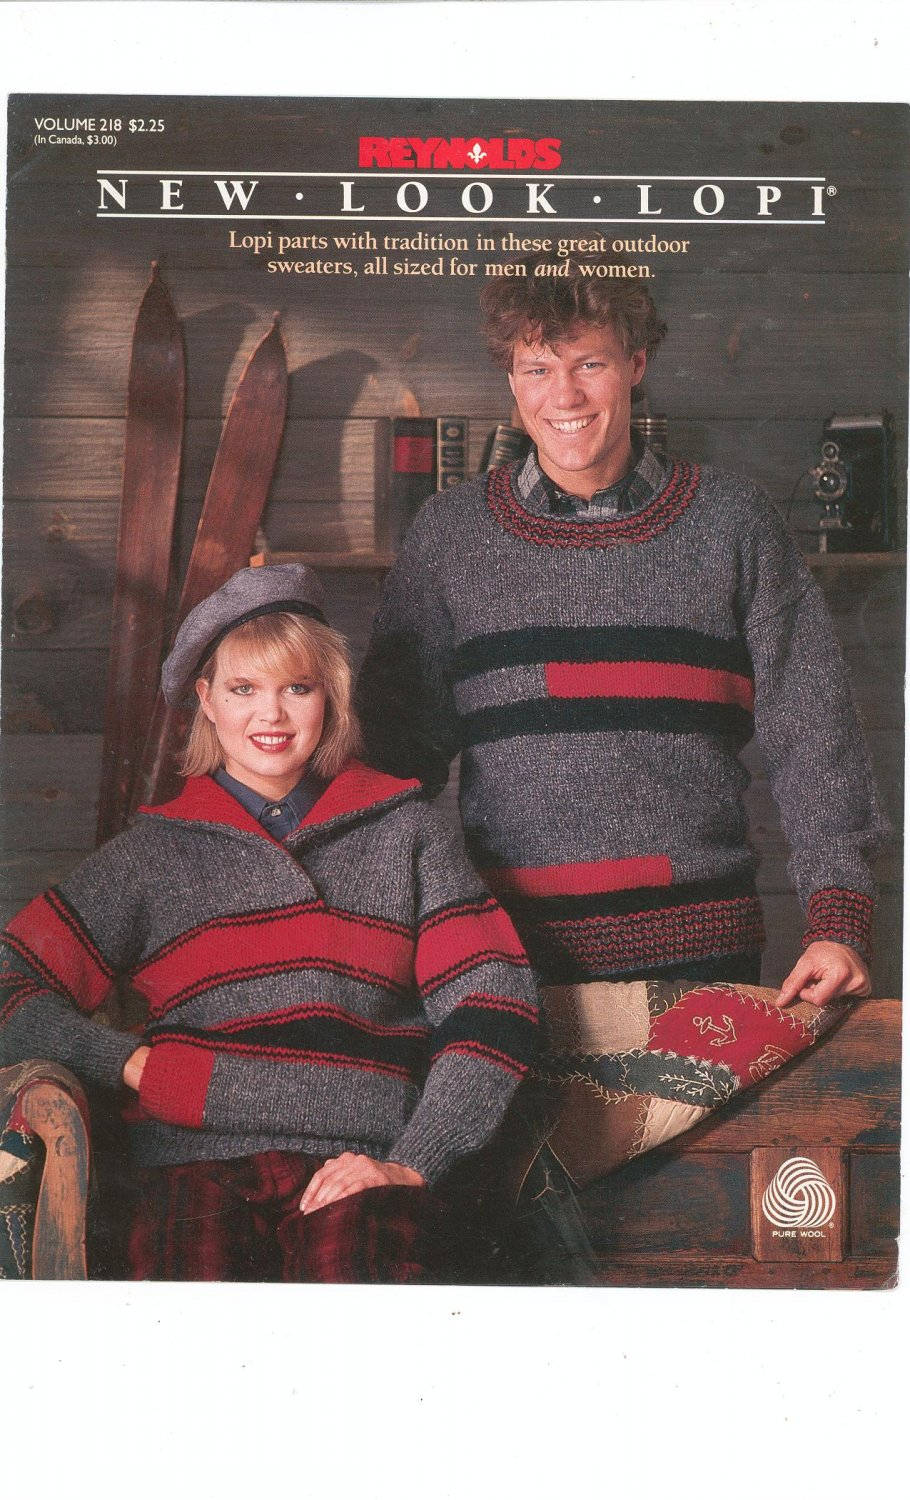 Reynolds New Look Lopi Volume 218 Sweaters Men & Women Knitting